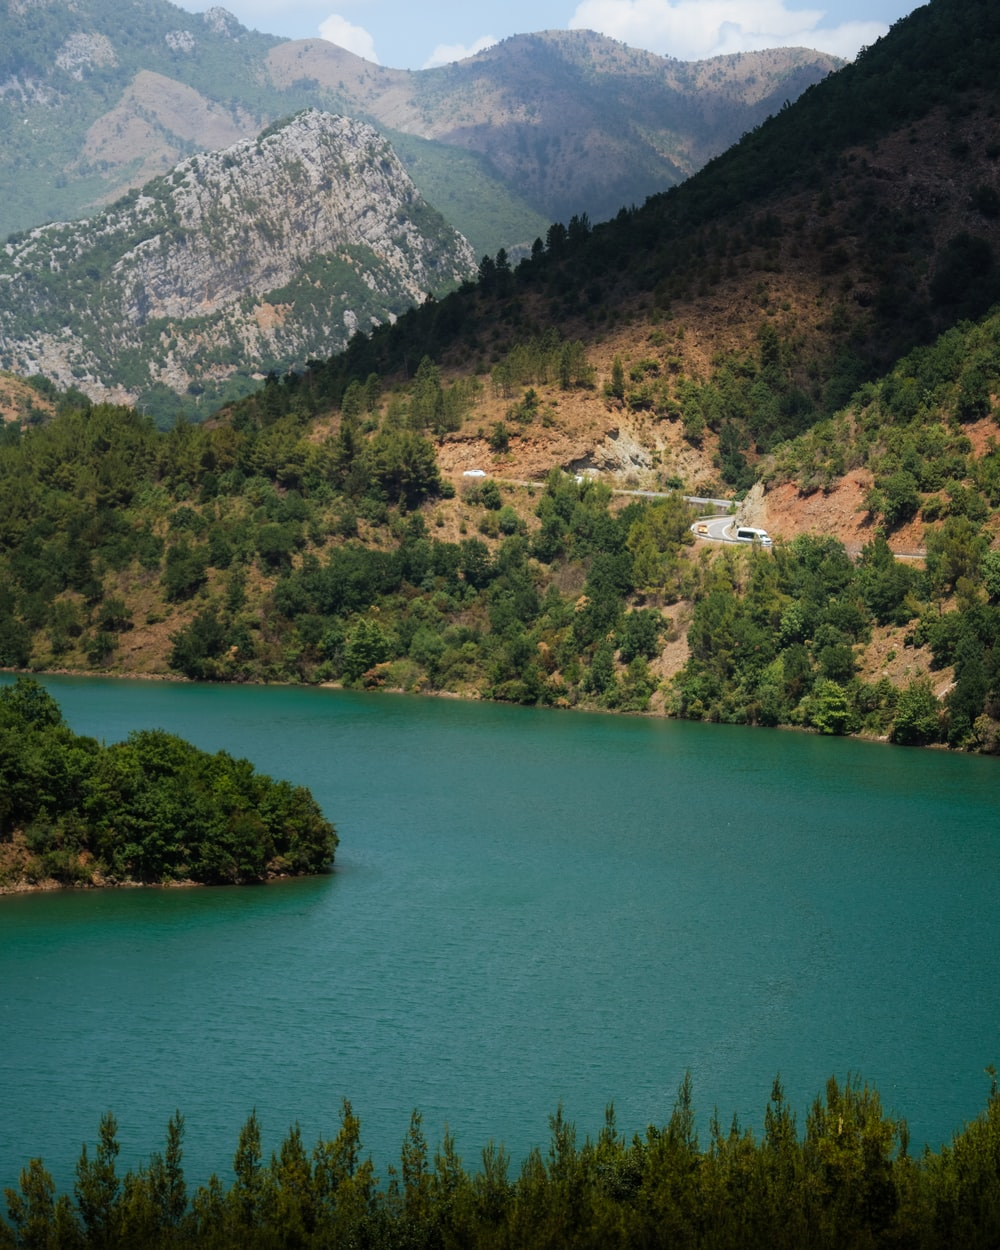 green lake surrounded by green trees and mountains during daytime